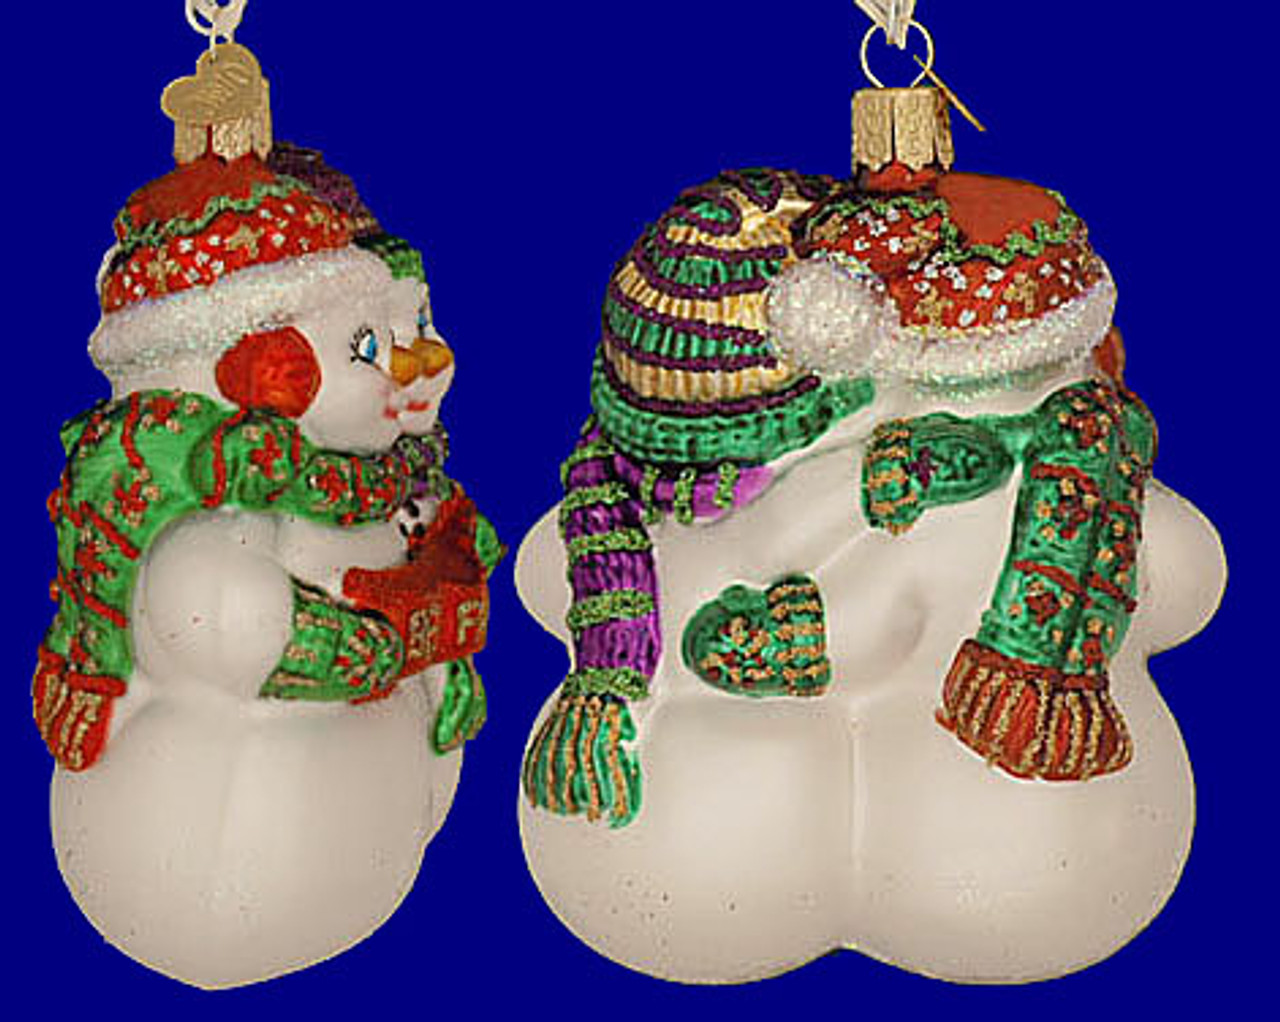 Best Friends Snowman Glass Blown Ornaments for Christmas Tree 24008 Old World Christmas Ornaments